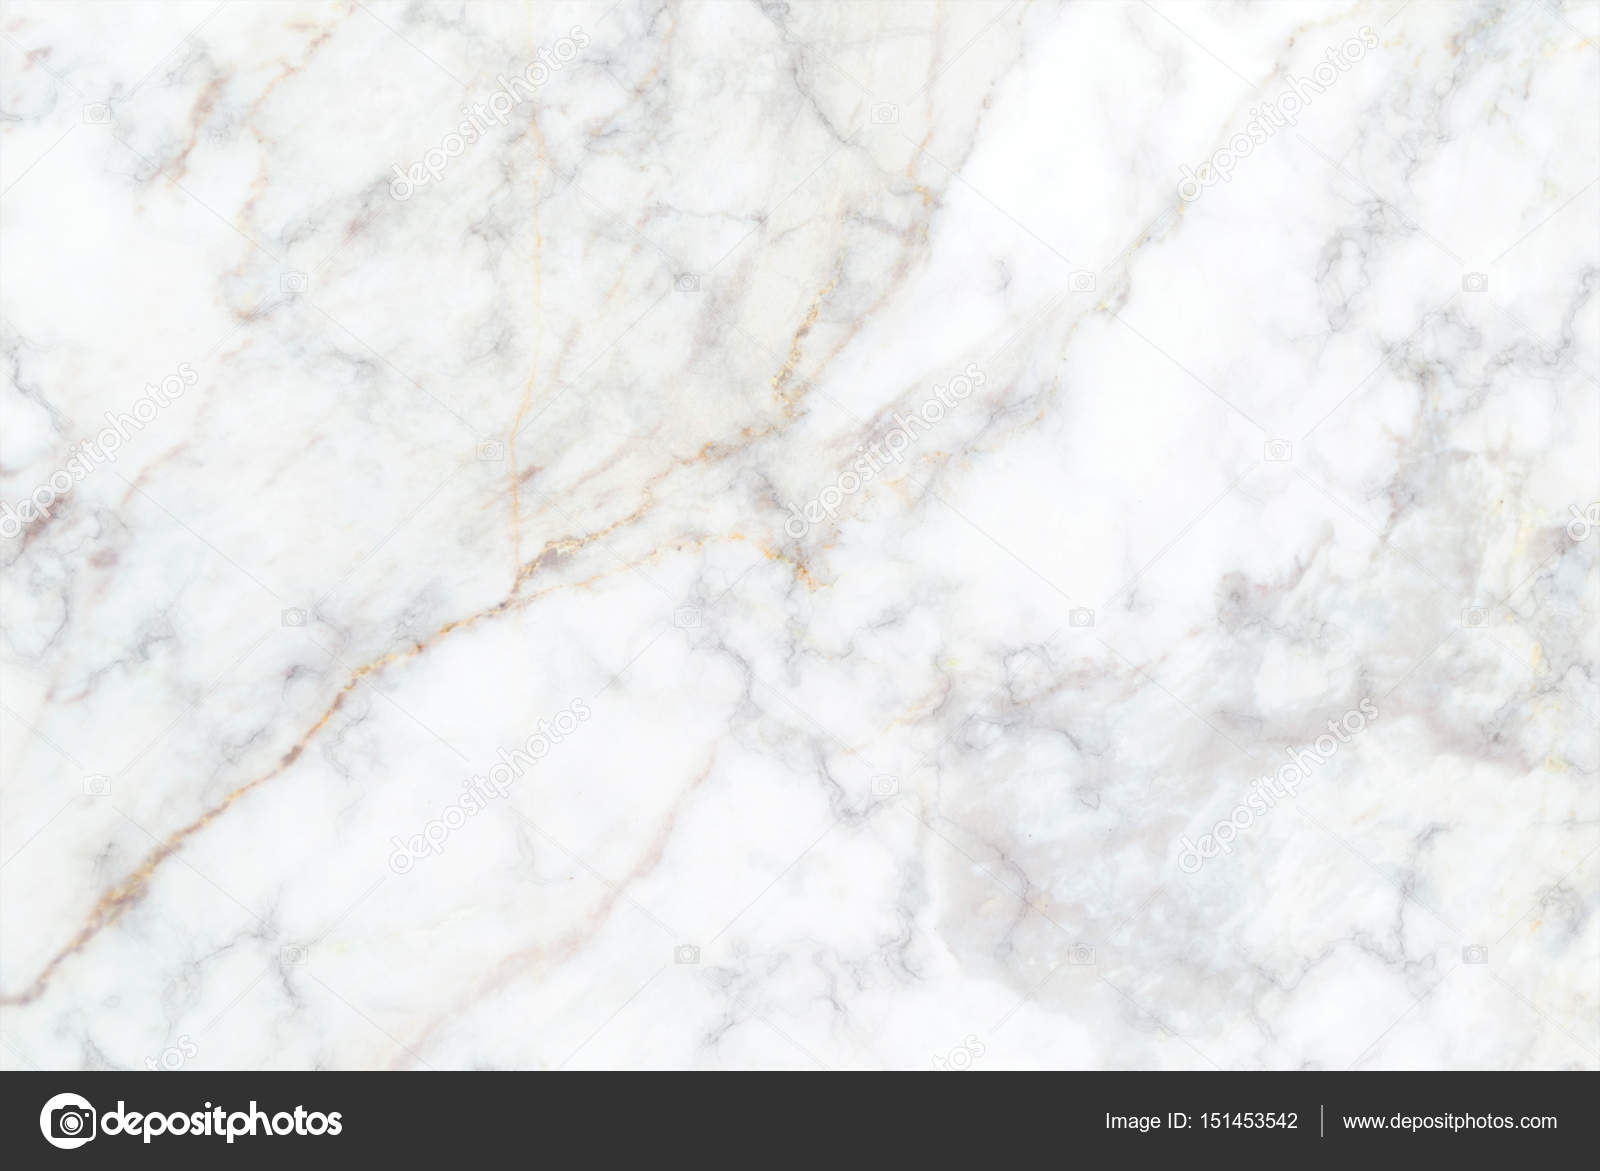 I Love Wallpaper Blaydon : White Marble Wallpaper - Best 4k Wallpaper